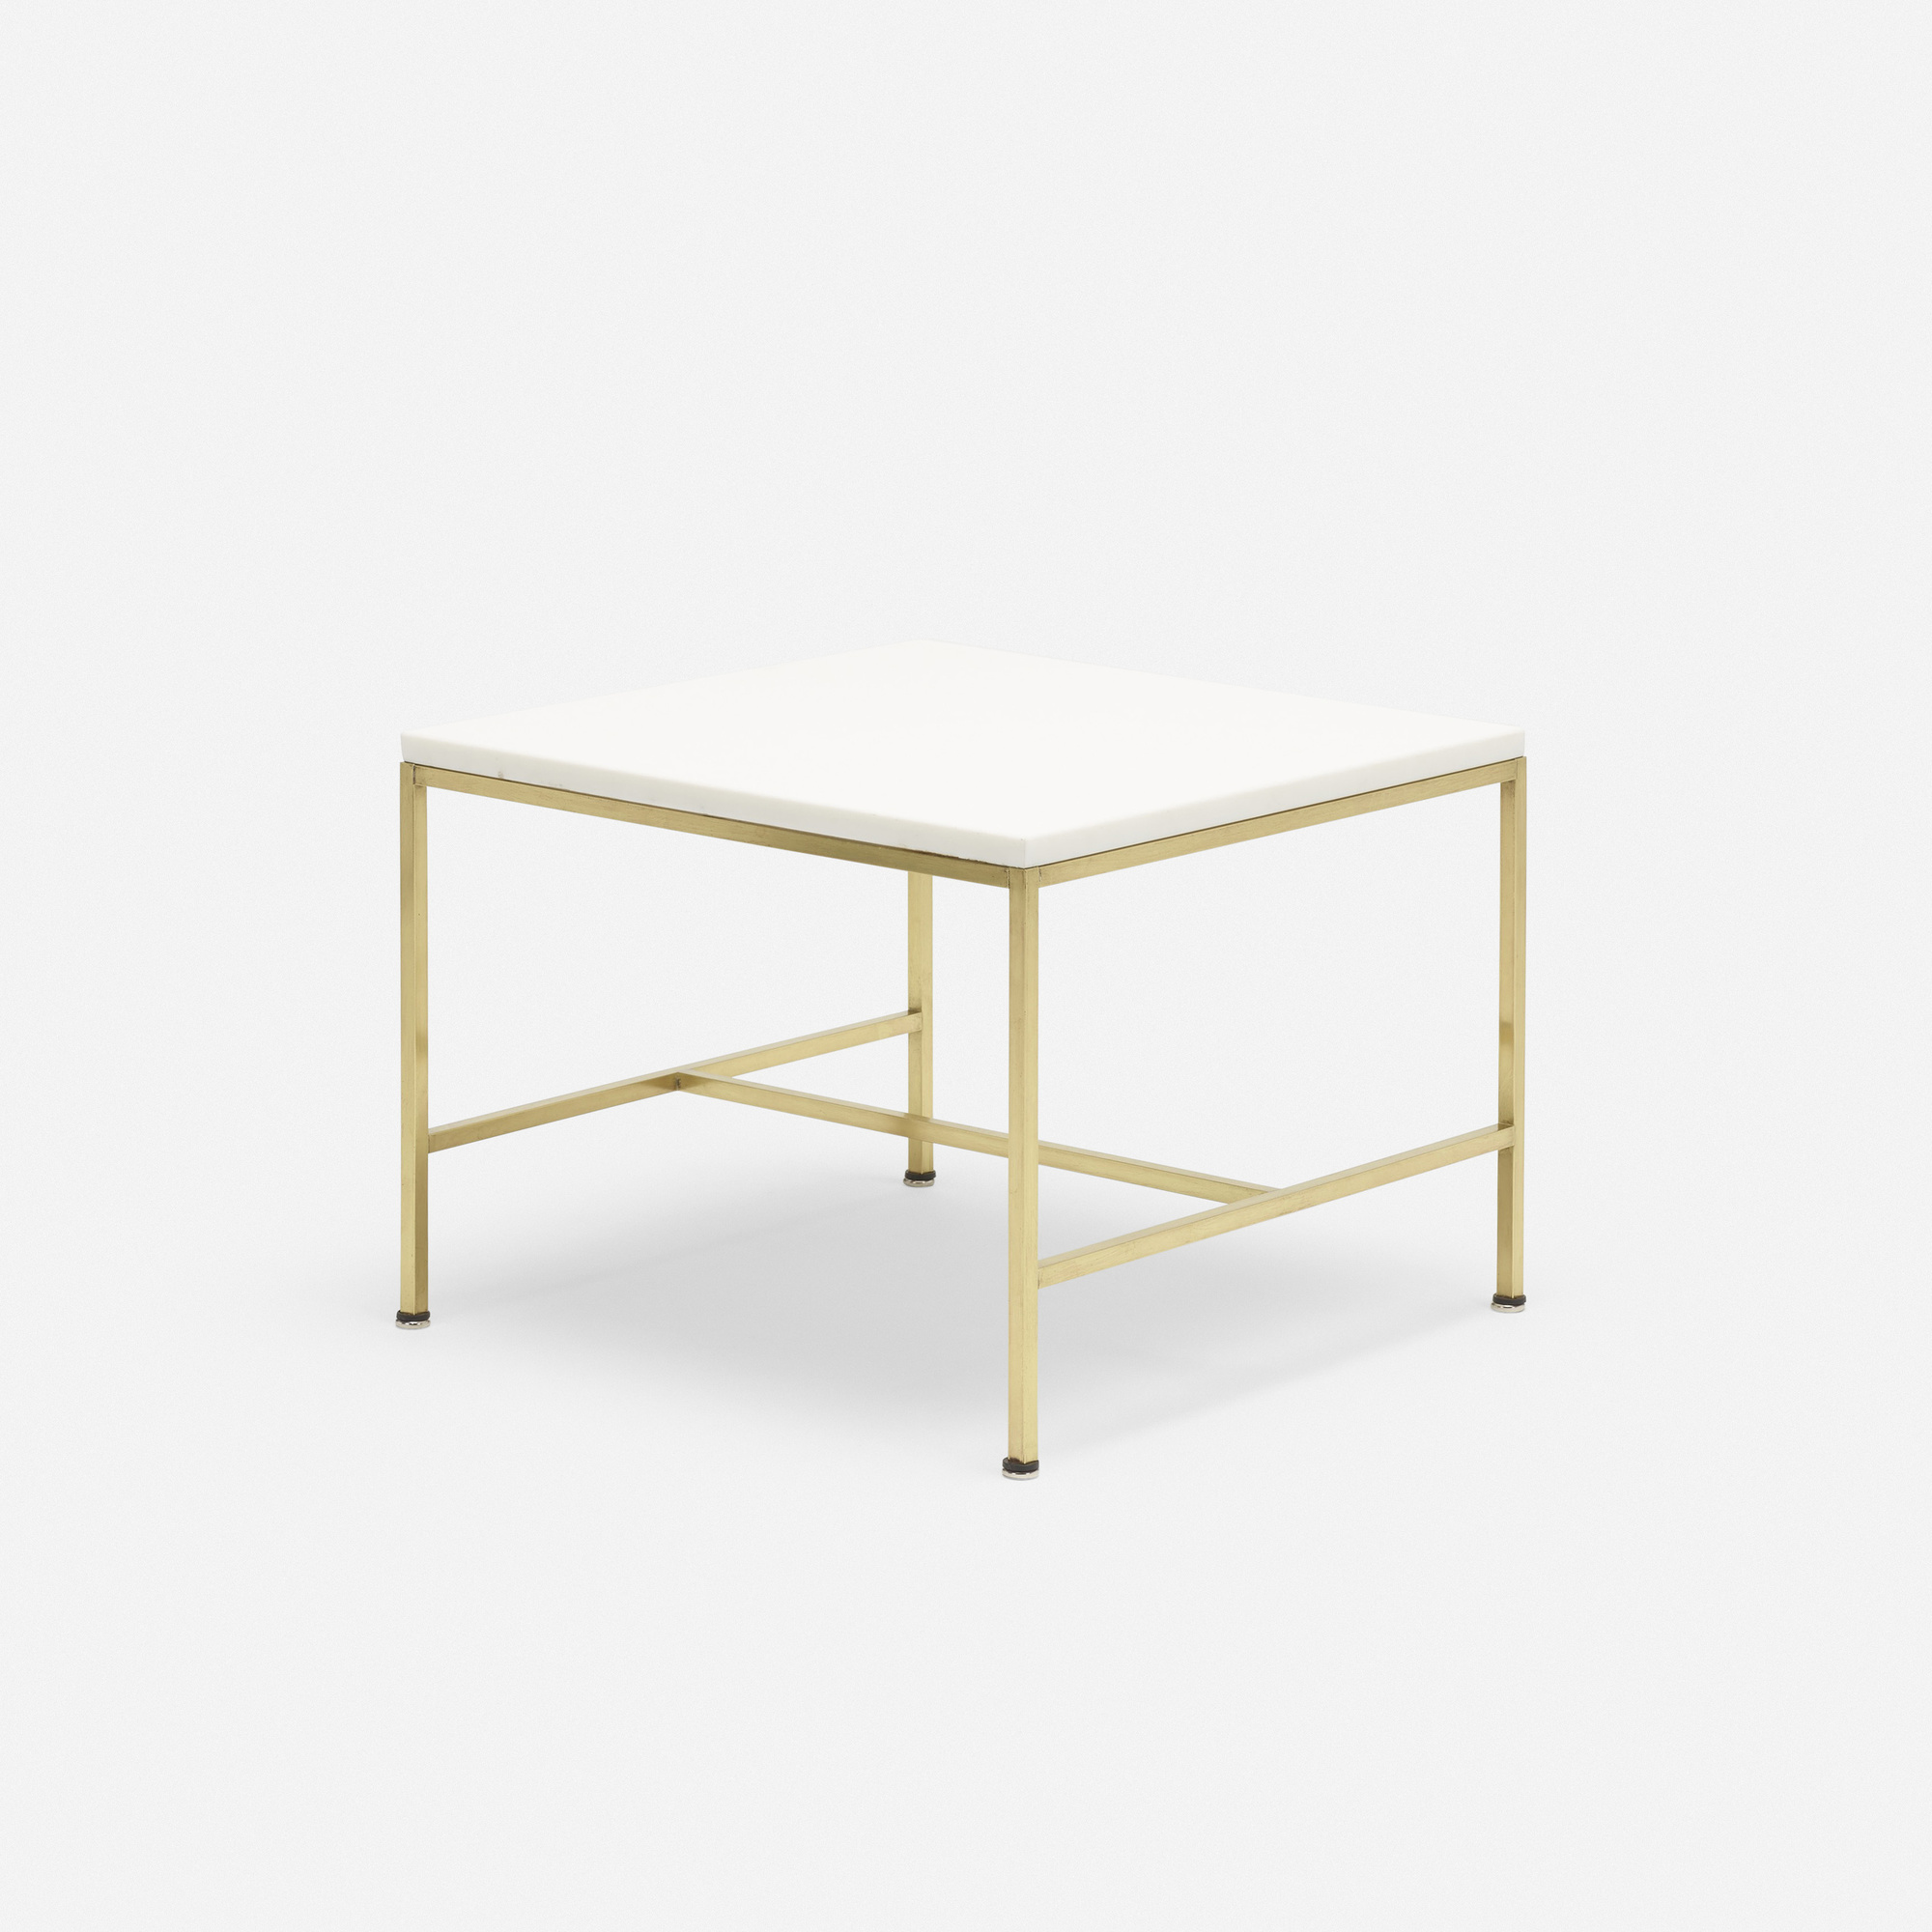 559: Paul McCobb / occasional table (1 of 2)